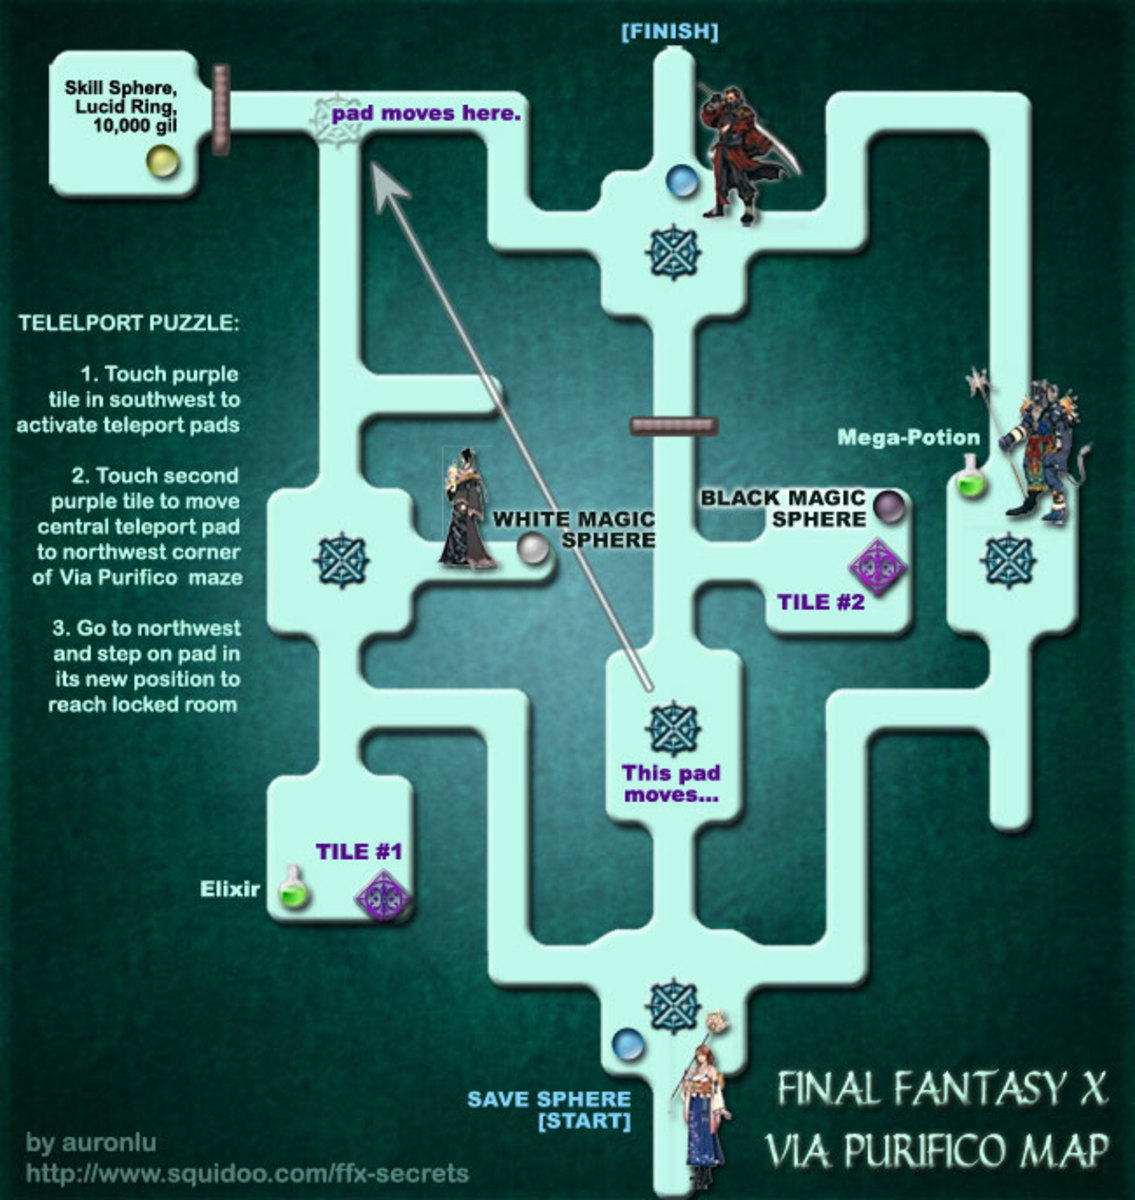 Final Fantasy X - Via Purifico Map